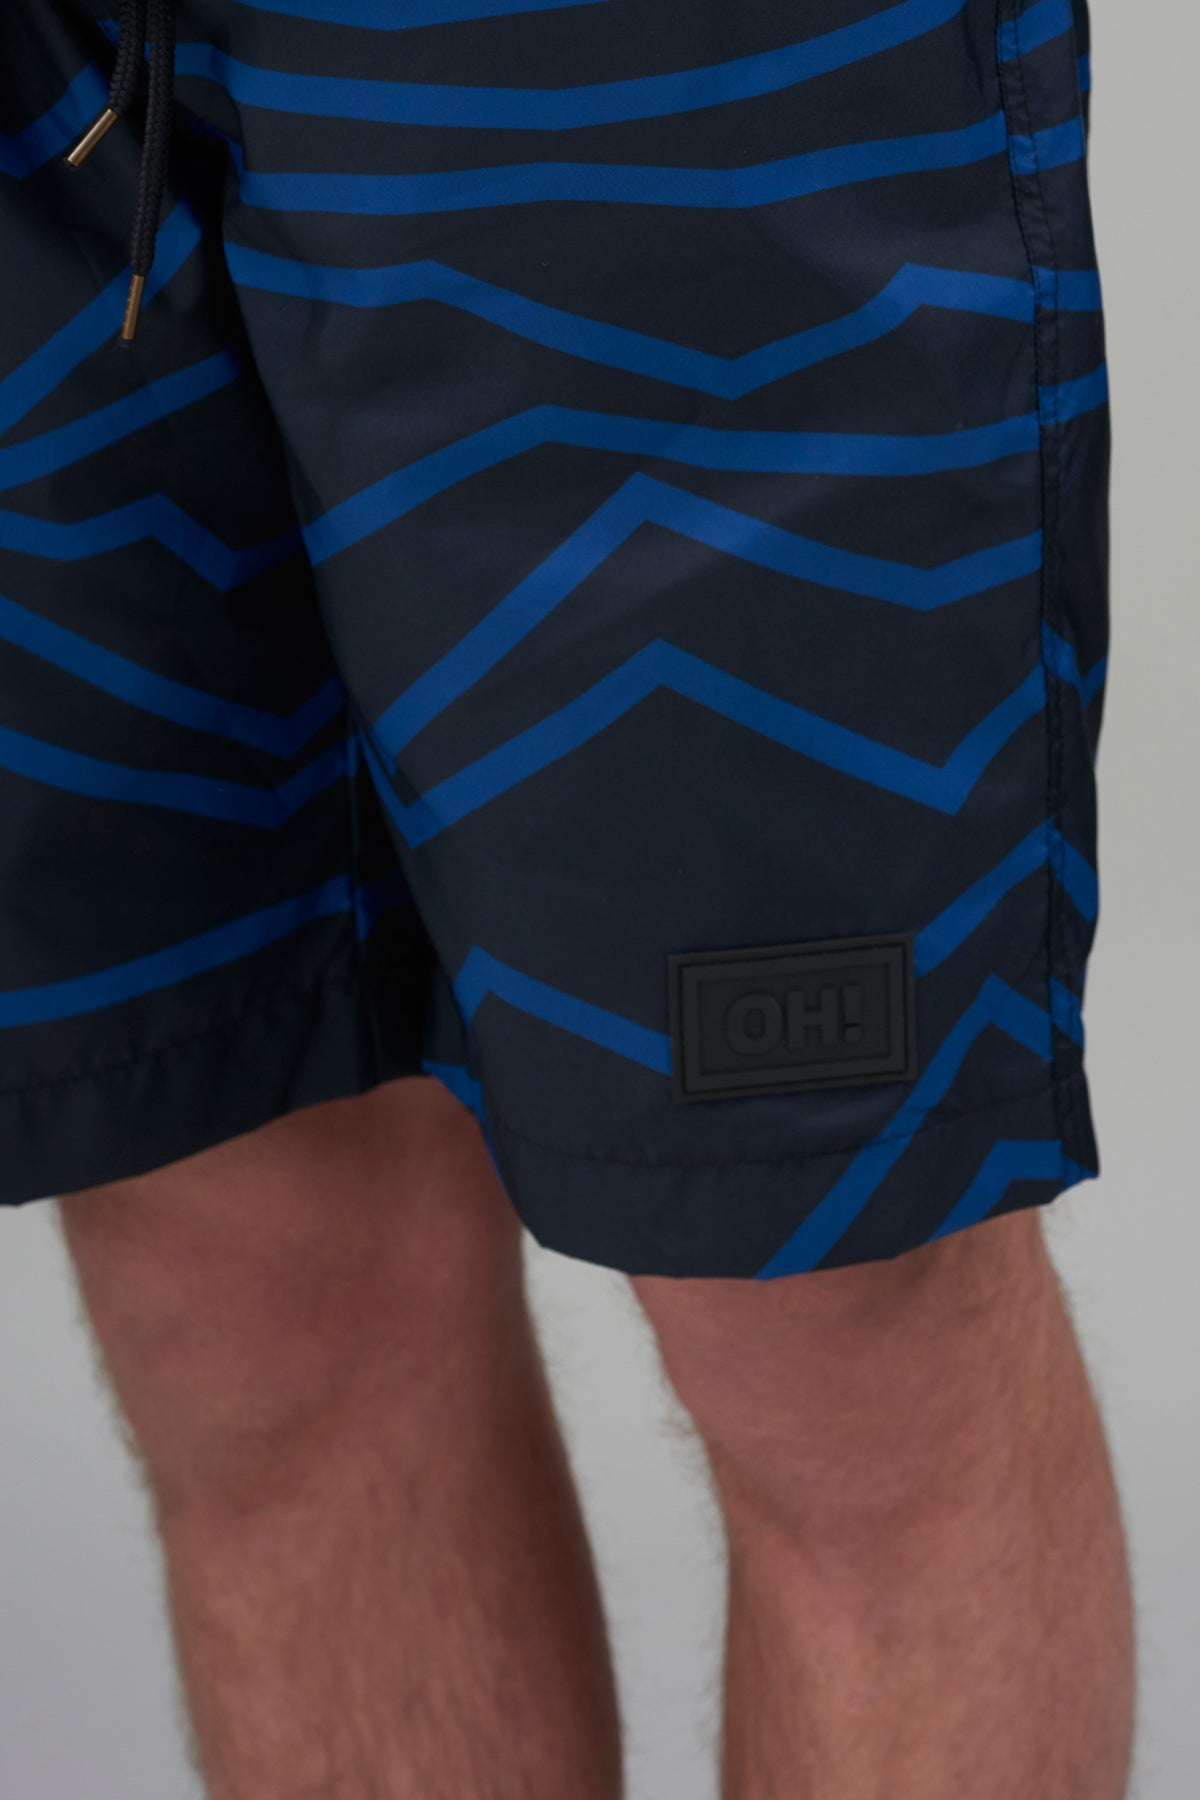 Low Countries Shorts Blue, 100% PES / Silicon OH! patch / 55g/m2 / Low Countries all-over print / Fabric from Belgium / Made in Portugal